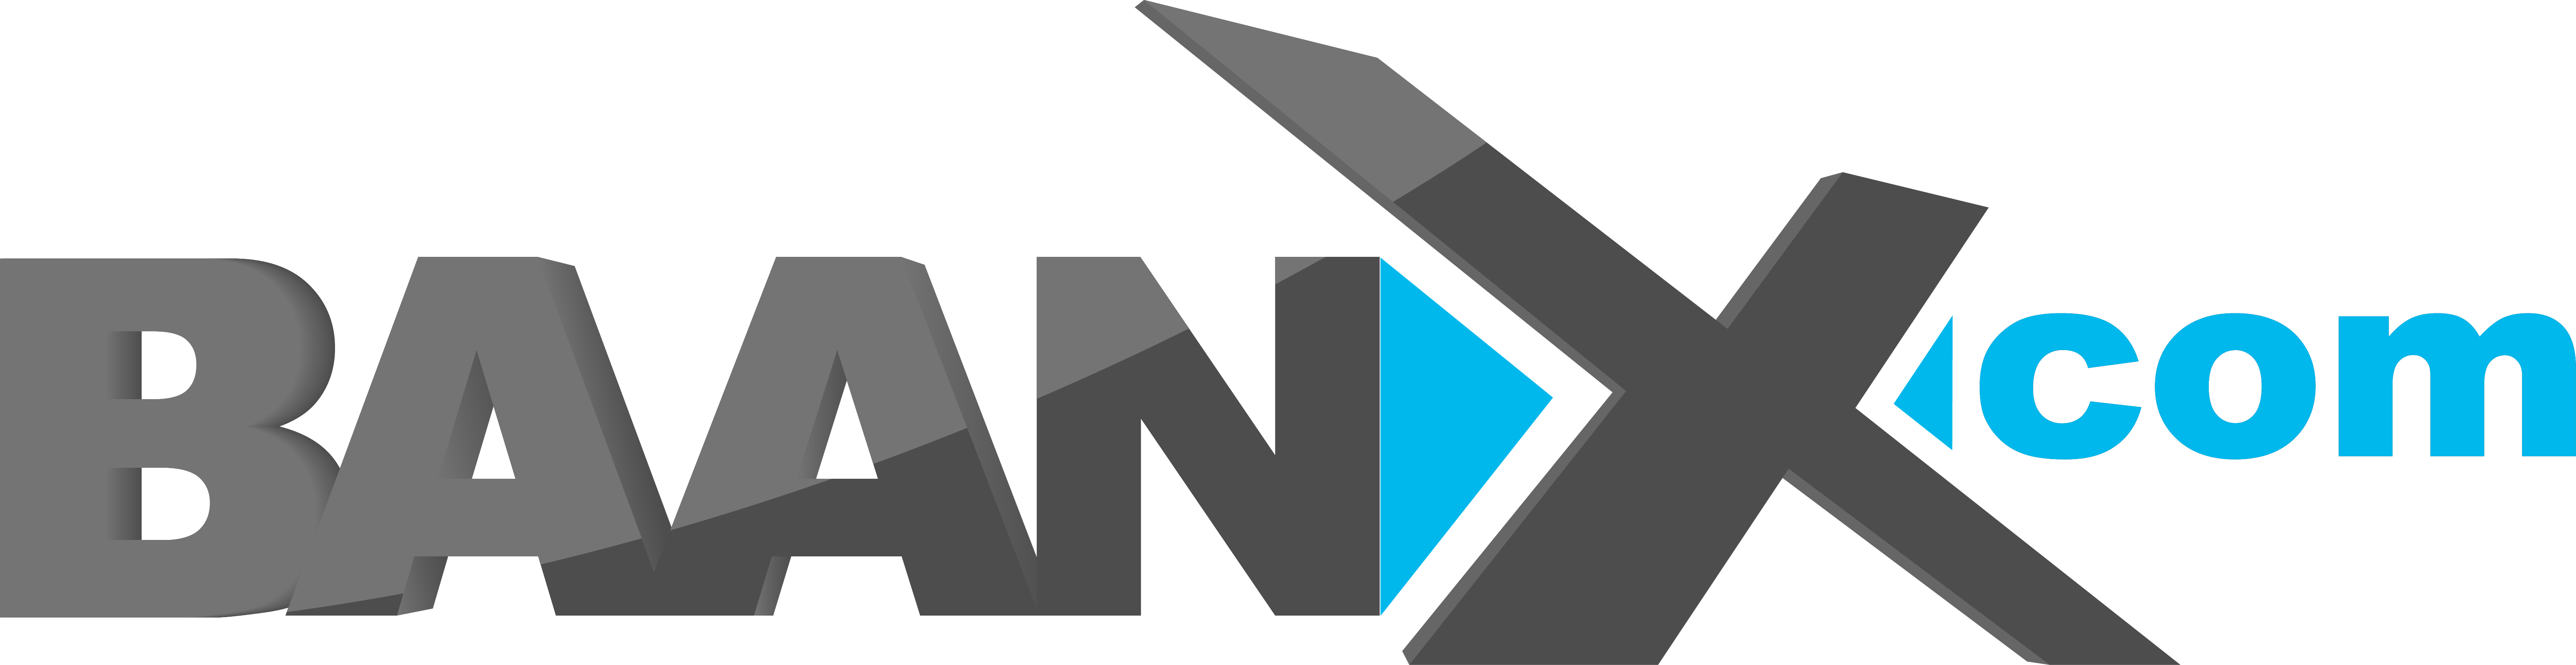 Decentralised Cryptobank Baanx.com Now Has Two of the Top Three ICO ...